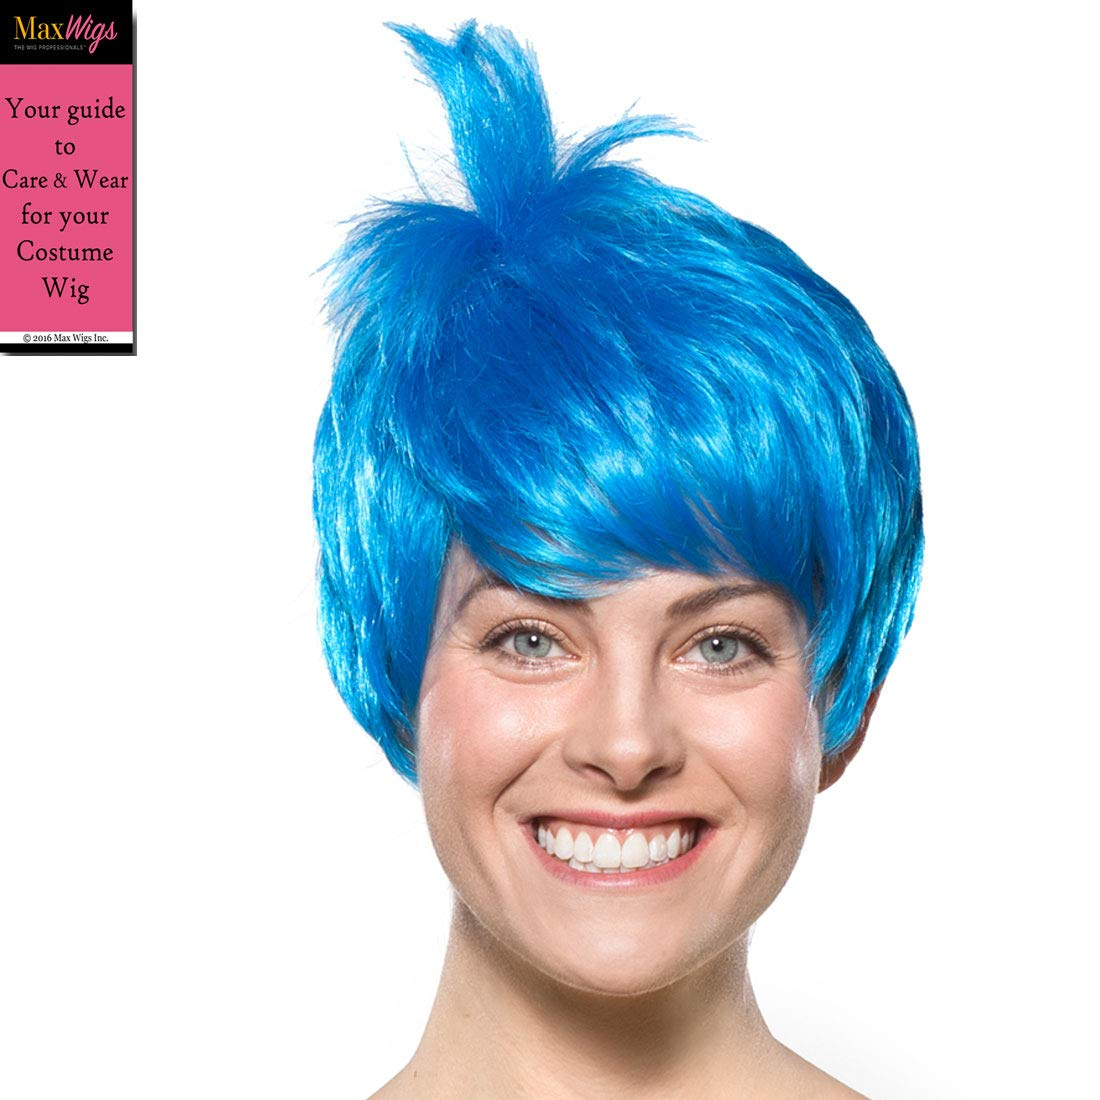 Joy Inside Out Color Blue - Enigma Wigs Womens Joyous Emotion Happy Bundle Costume Wig Care Guide